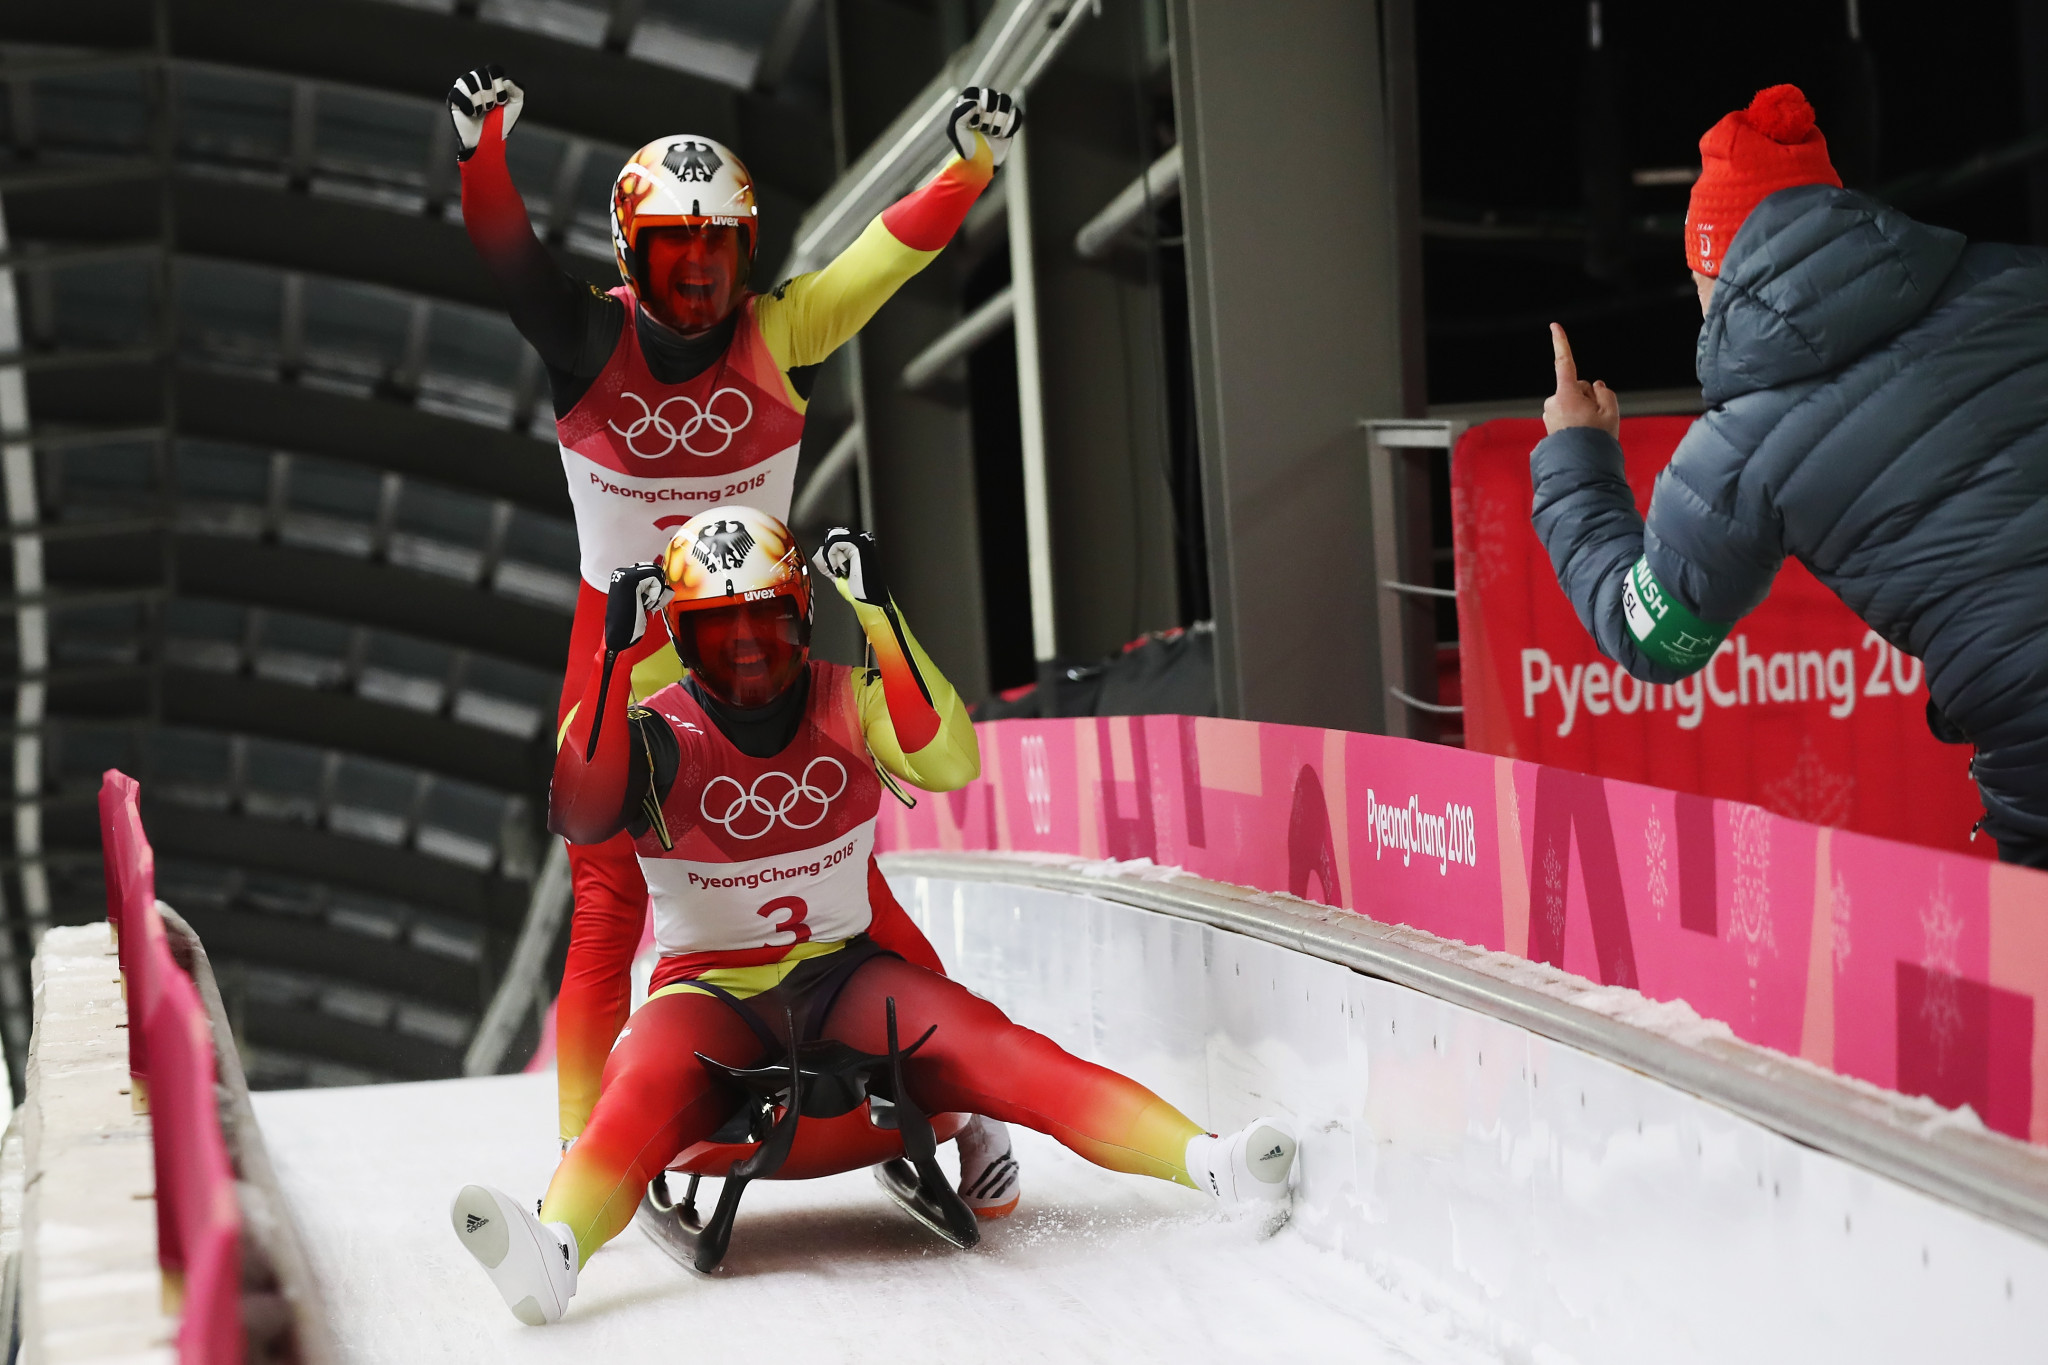 Wendl and Arlt maintain German charge with successful luge doubles title defence at Pyeongchang 2018